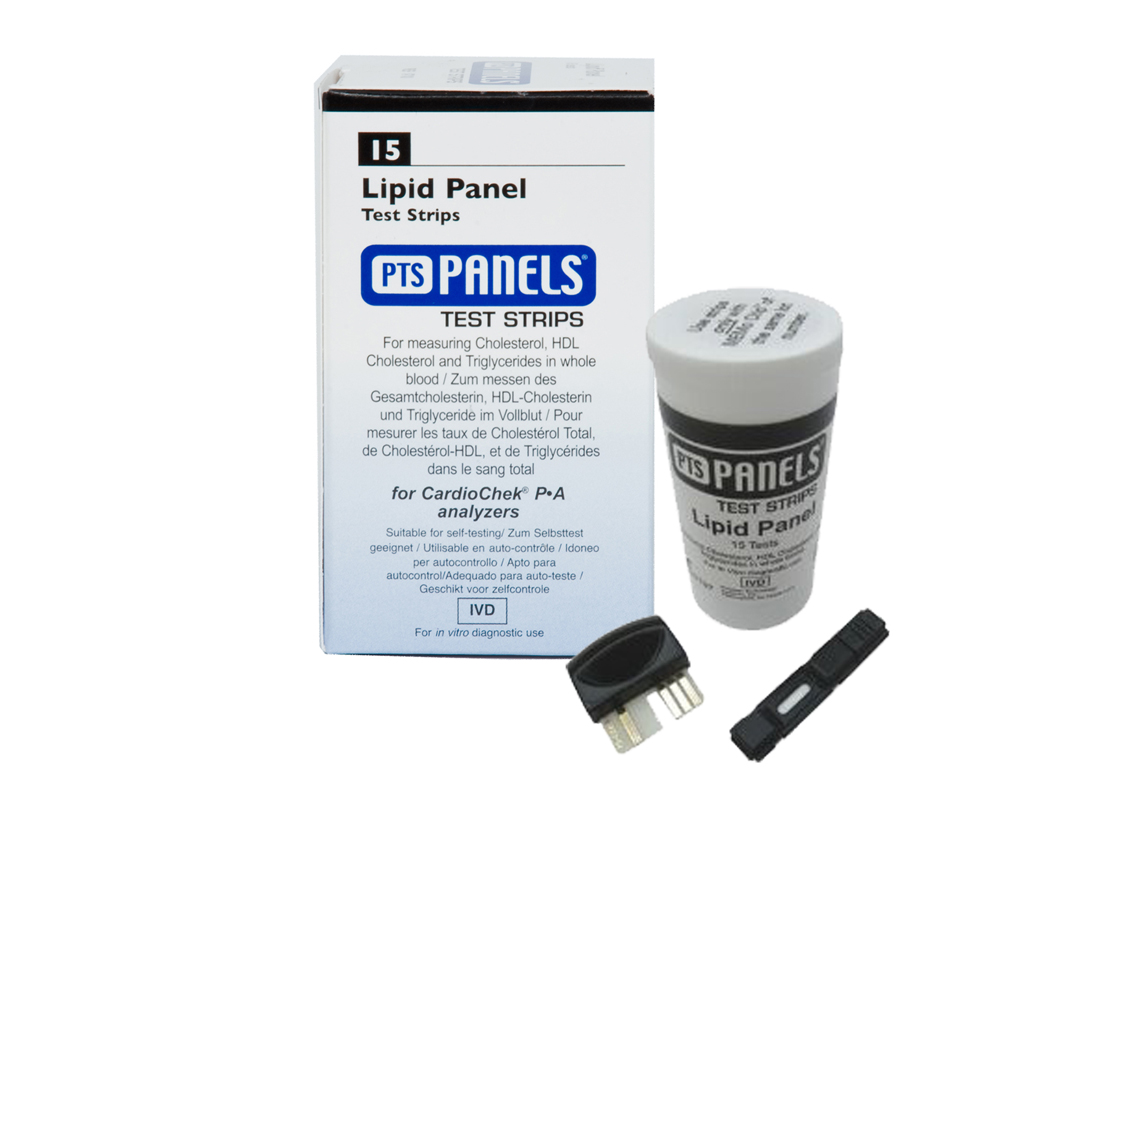 PTS1710 - Lipid Panel Test strips, (TC, HDL, LDL, Trig) - 15 strips/vial